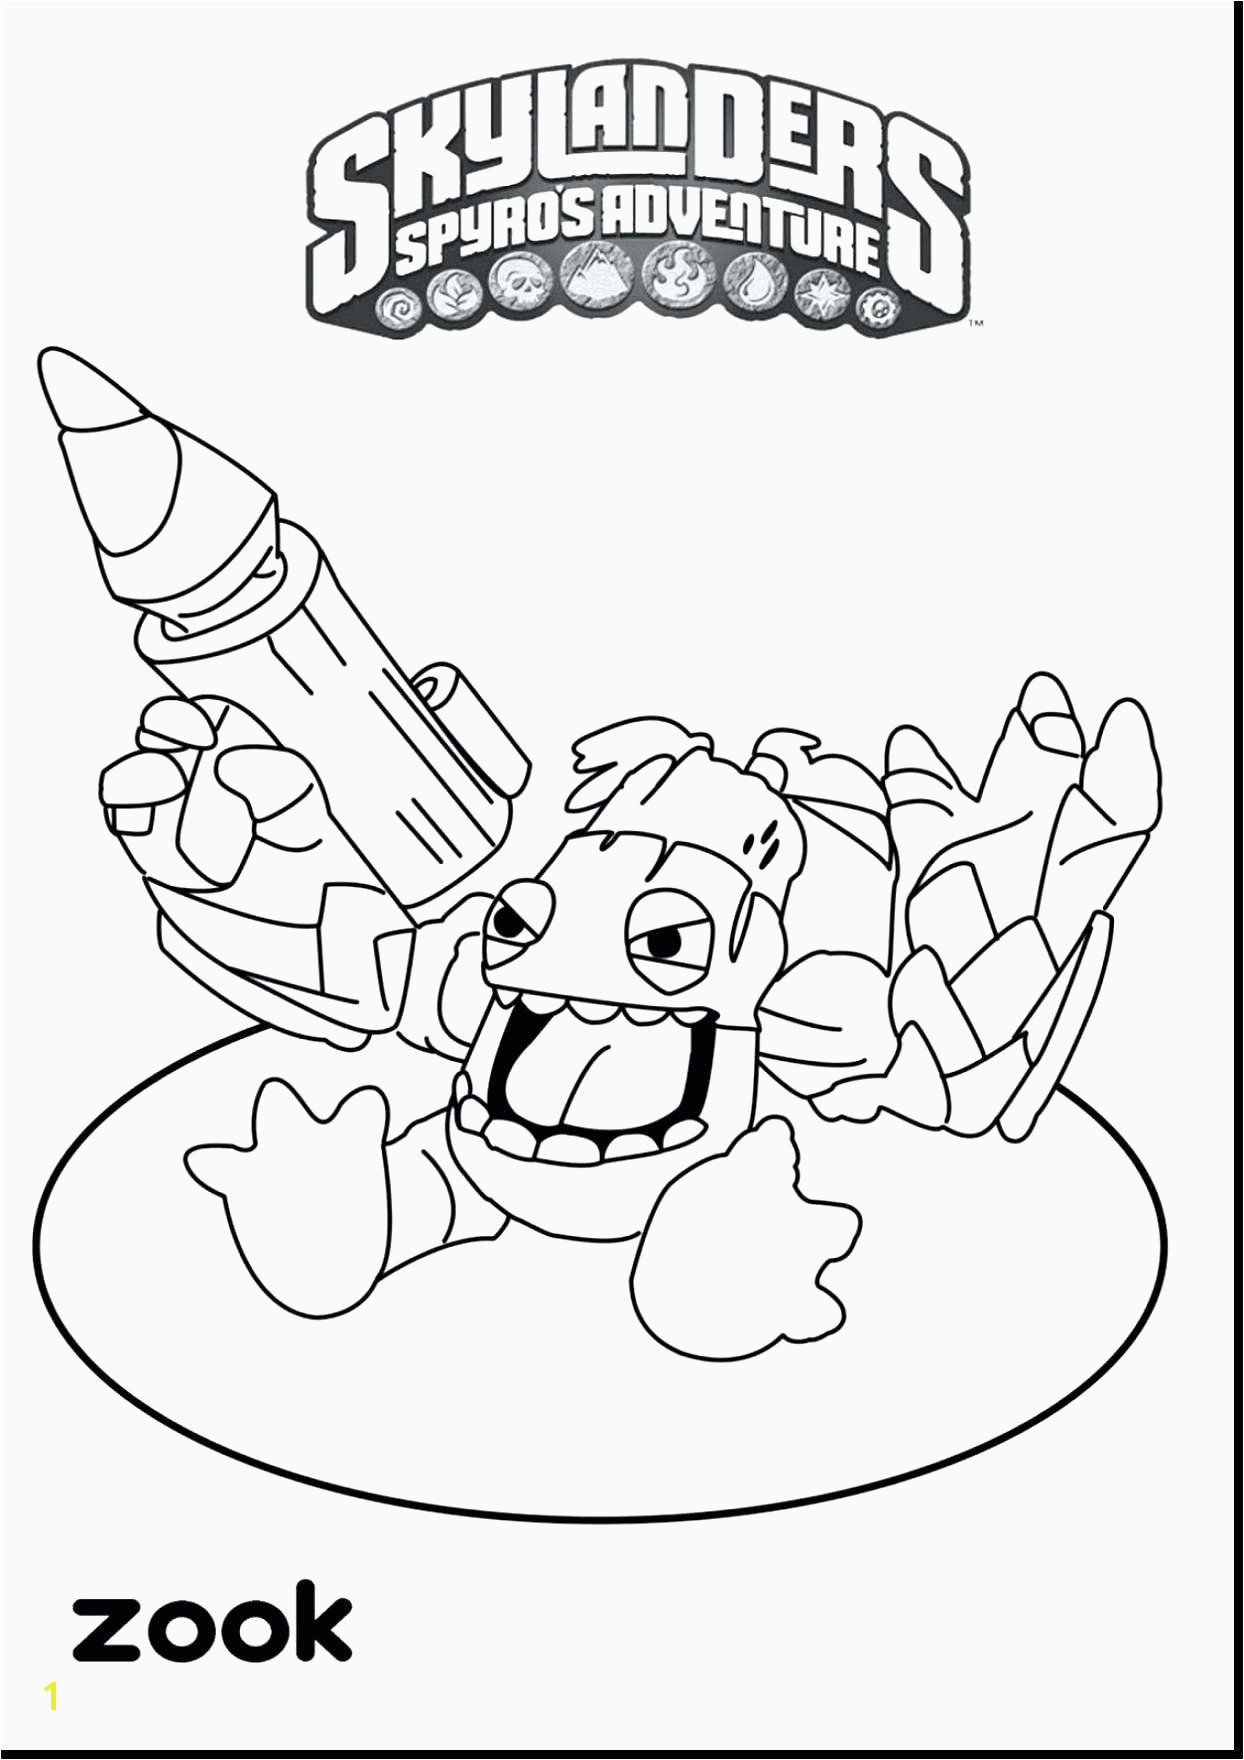 Lego Chima Ausmalbilder Schön 25 New Working Hard Coloring Pages Free